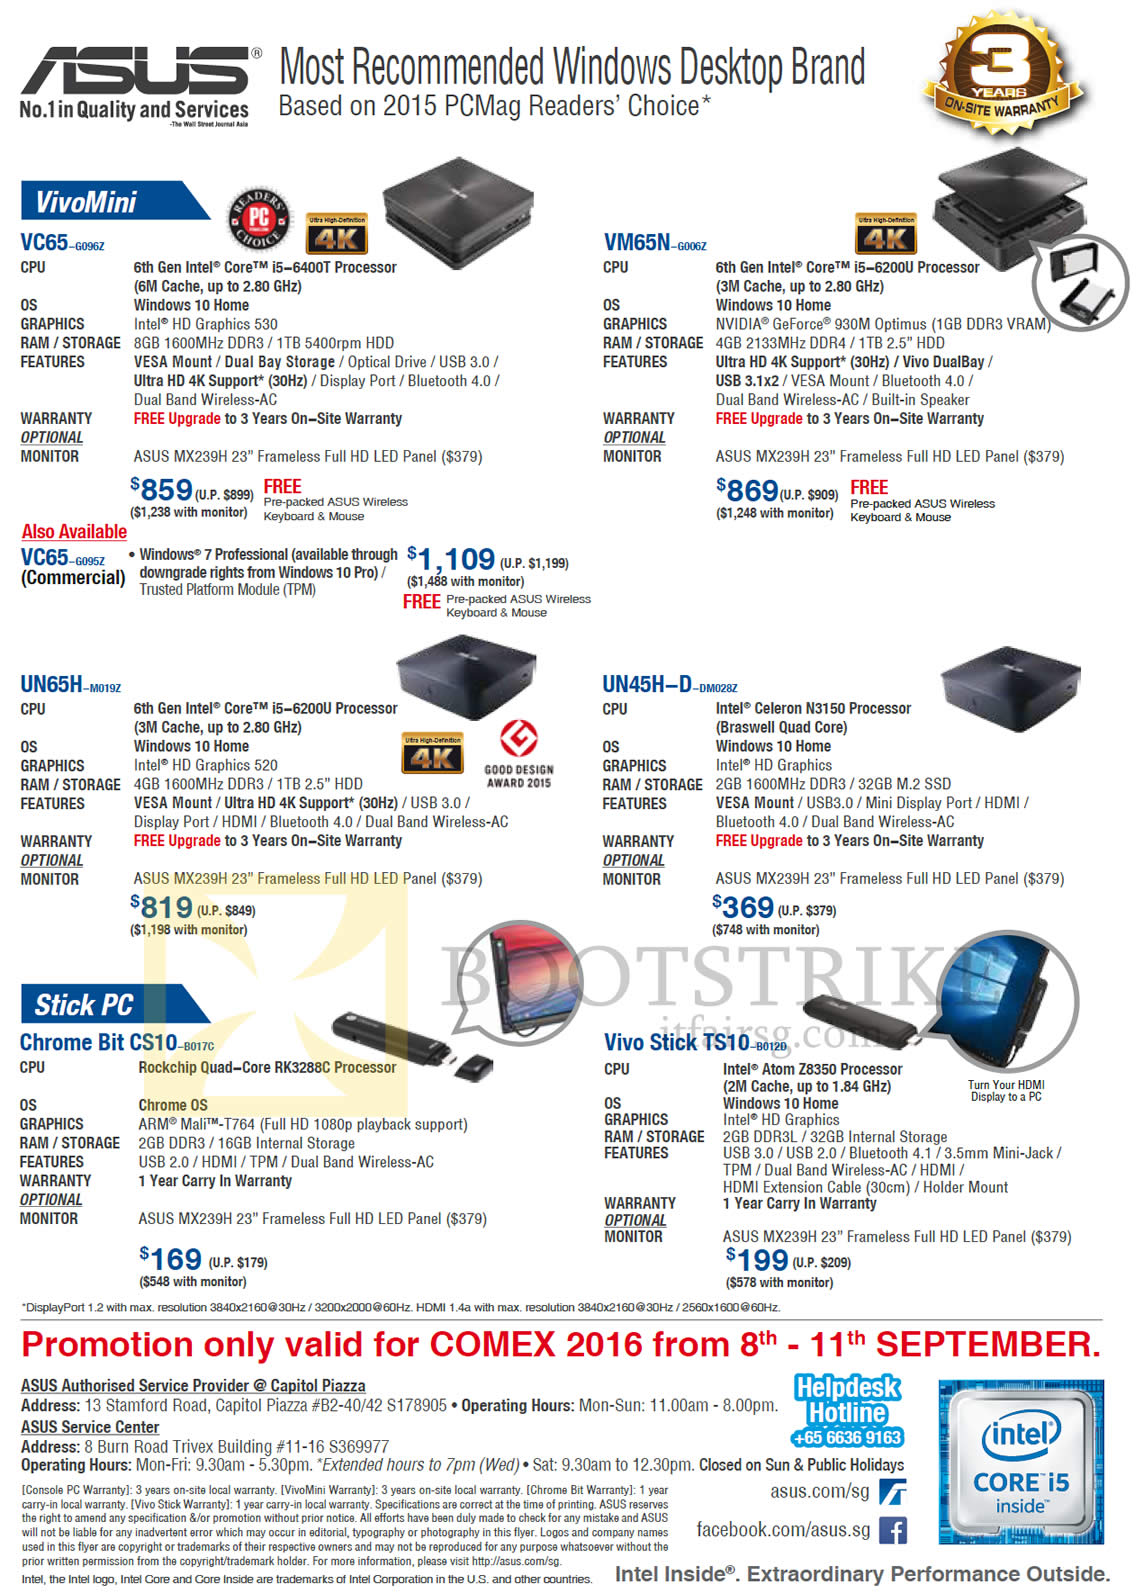 COMEX 2016 price list image brochure of ASUS Desktop PCs VivoMini VC65, VM65N, UN65H, UN45H-D, Stick PC Chrome Bit CS10, Vivo Stick TS10